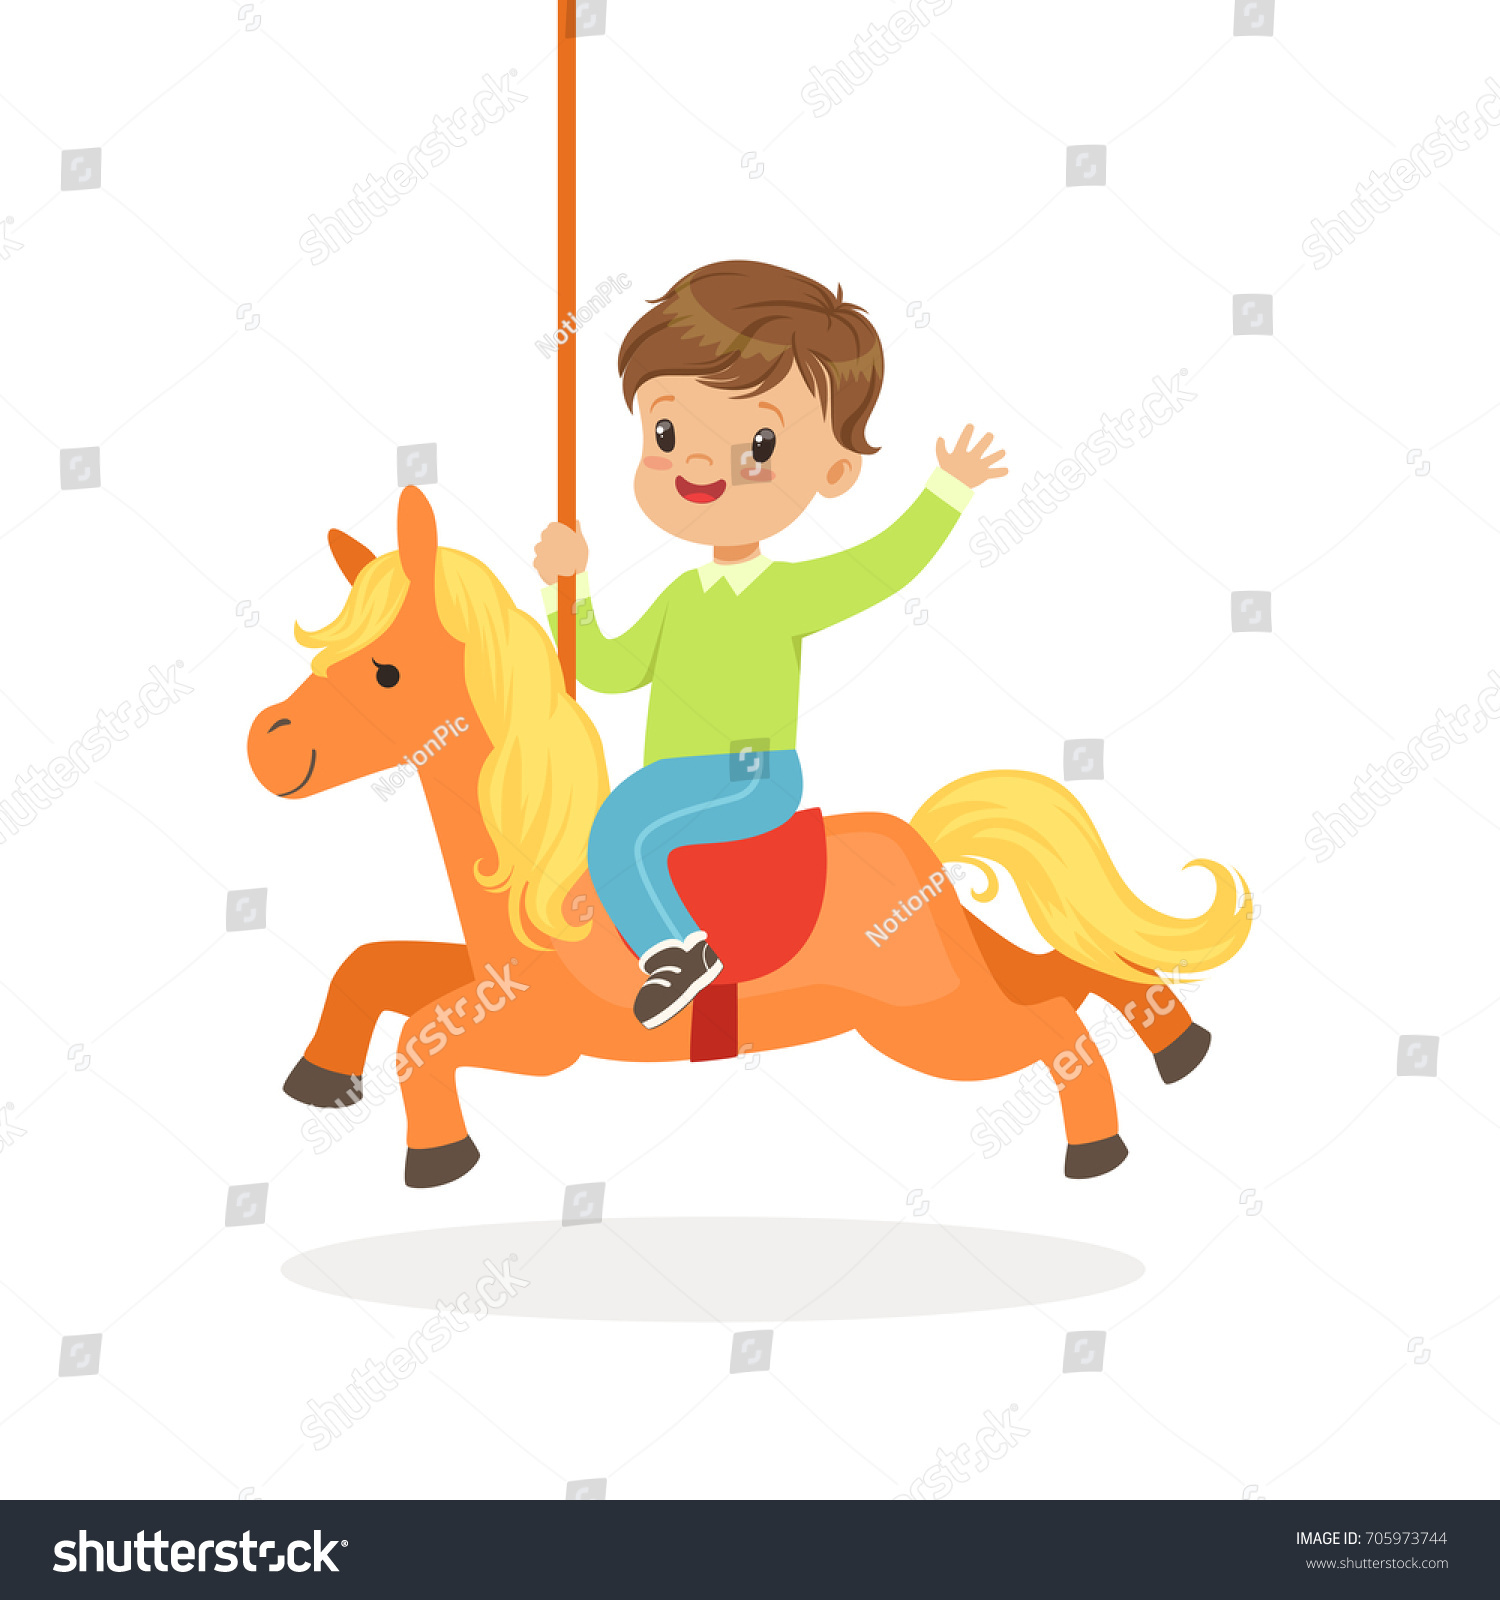 Cute Little Boy Riding On The Carousel Horse Kid Have A Fun In Amusement Park